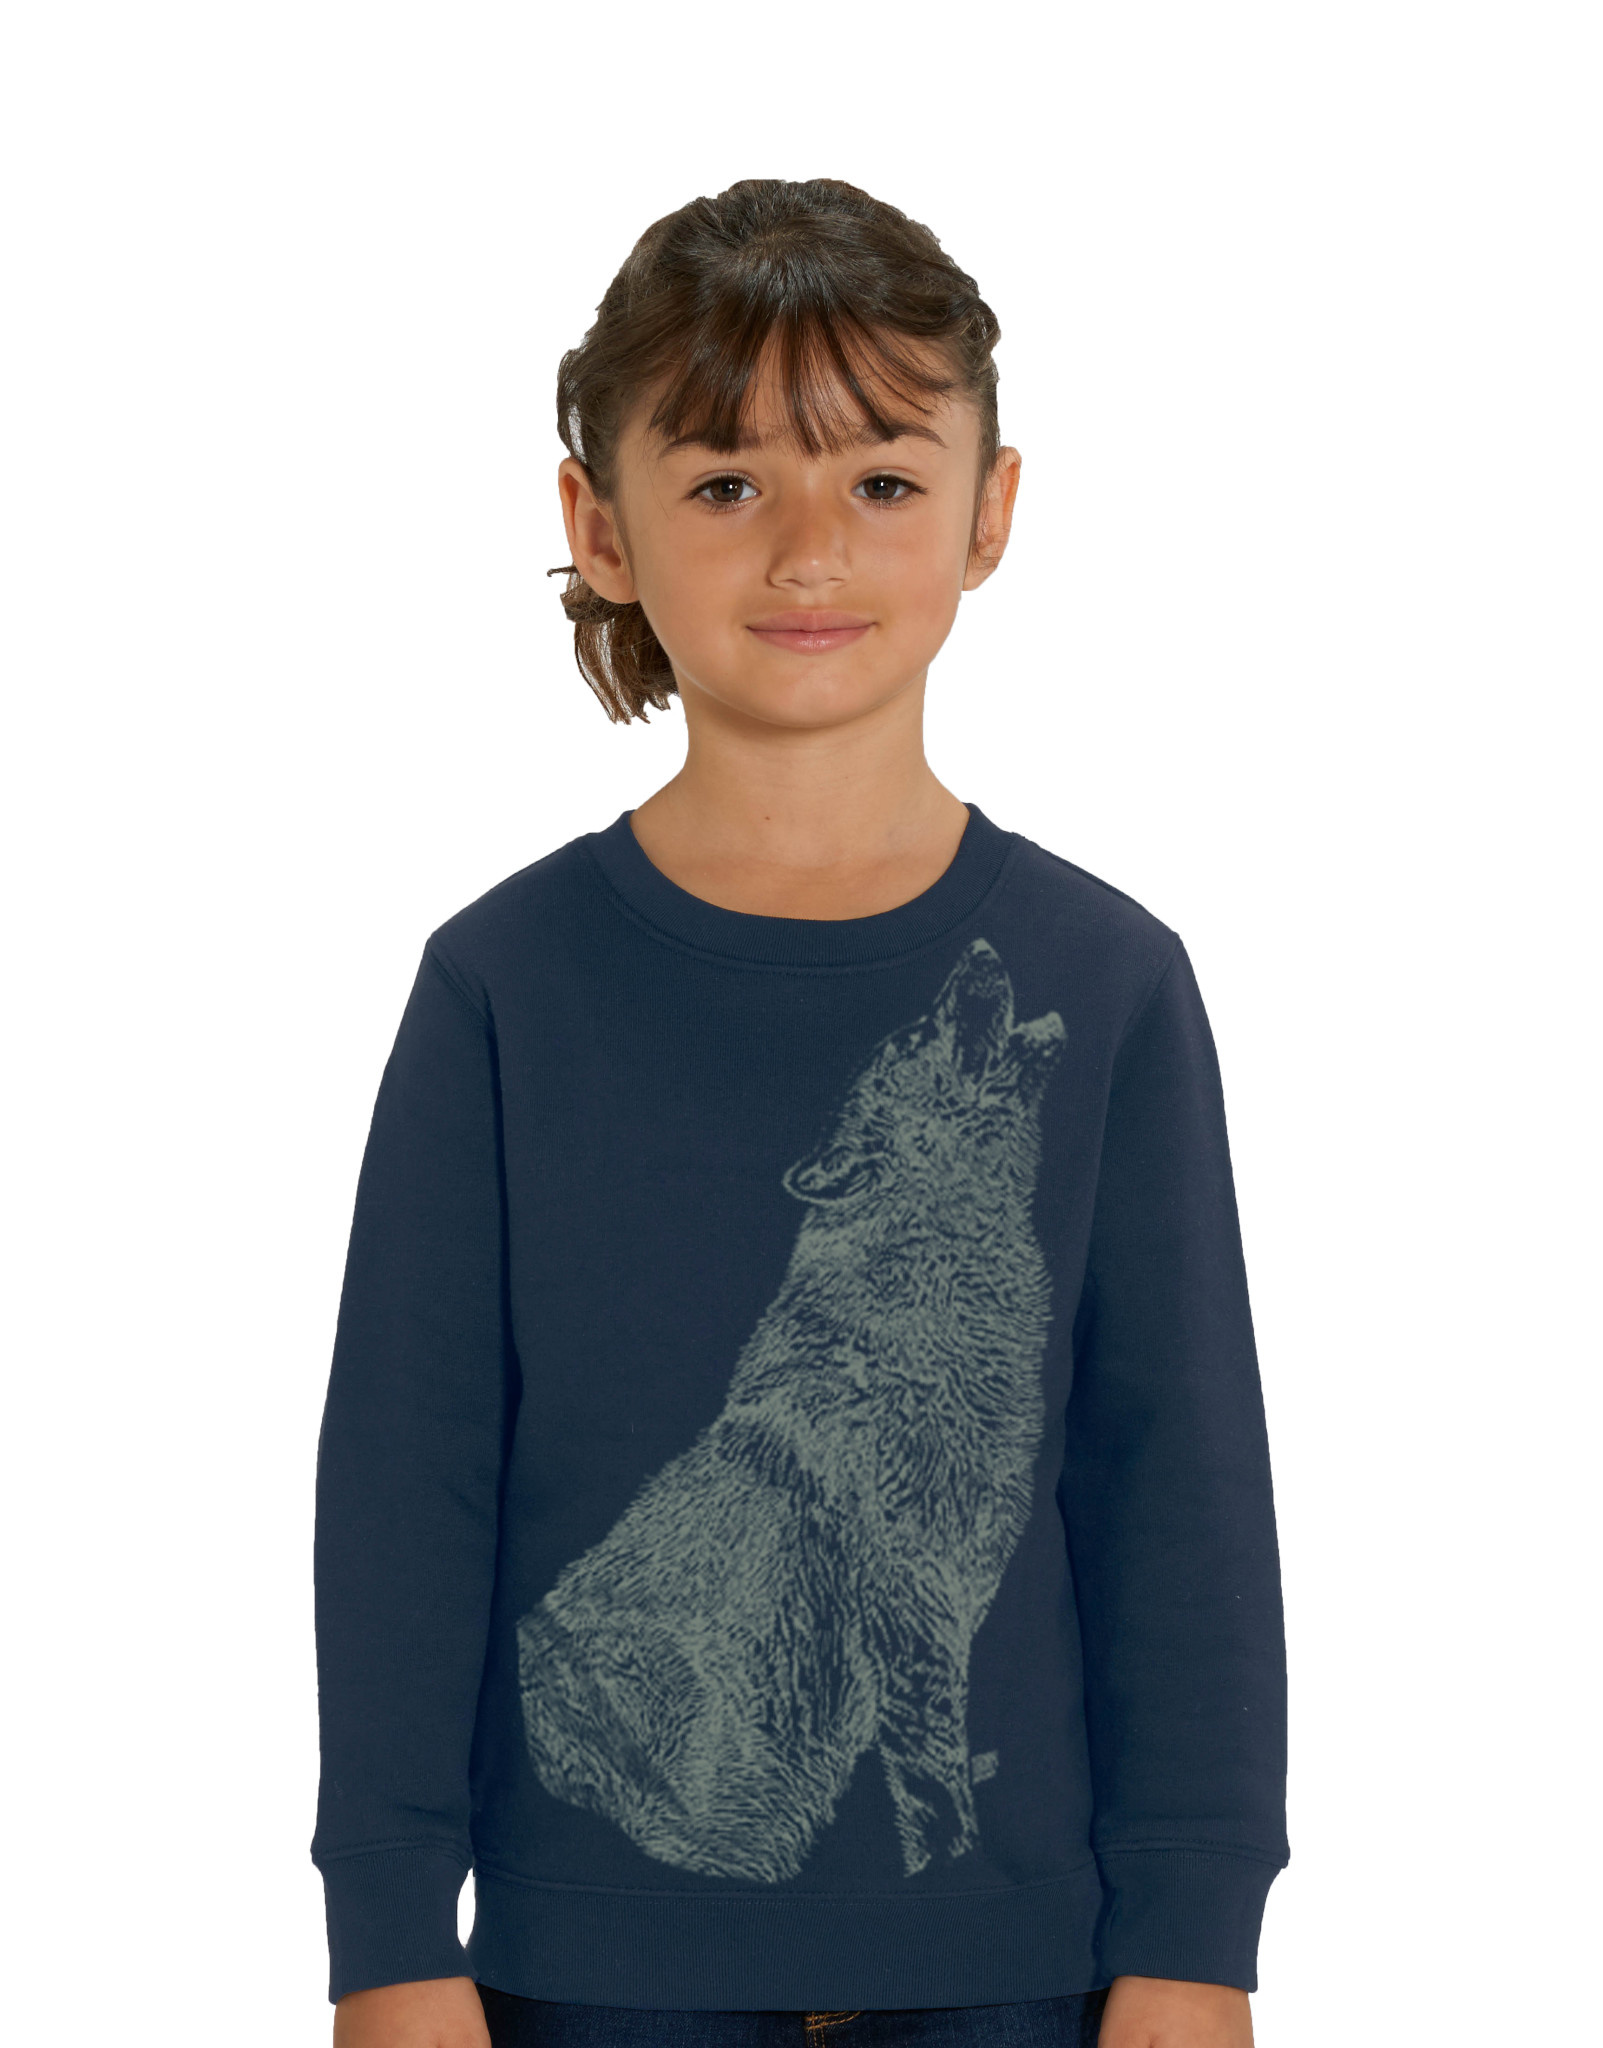 Howling Wolf Sweater - Glow in the Dark